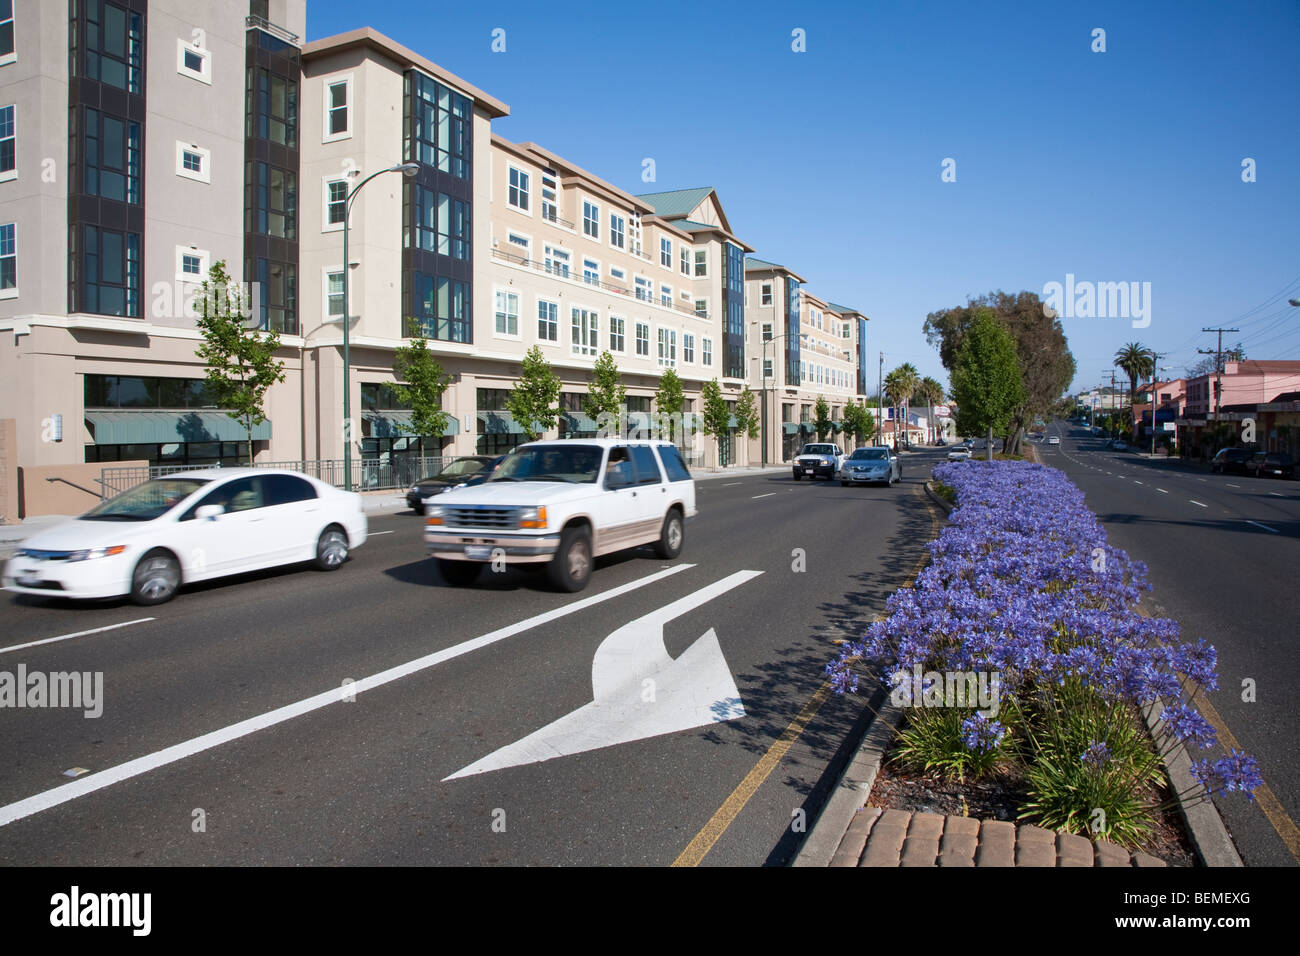 Cars on El Camino Real pass a mixed use housing development. Landscaped divided roadway. Millbrae, CA, USA Stock Photo